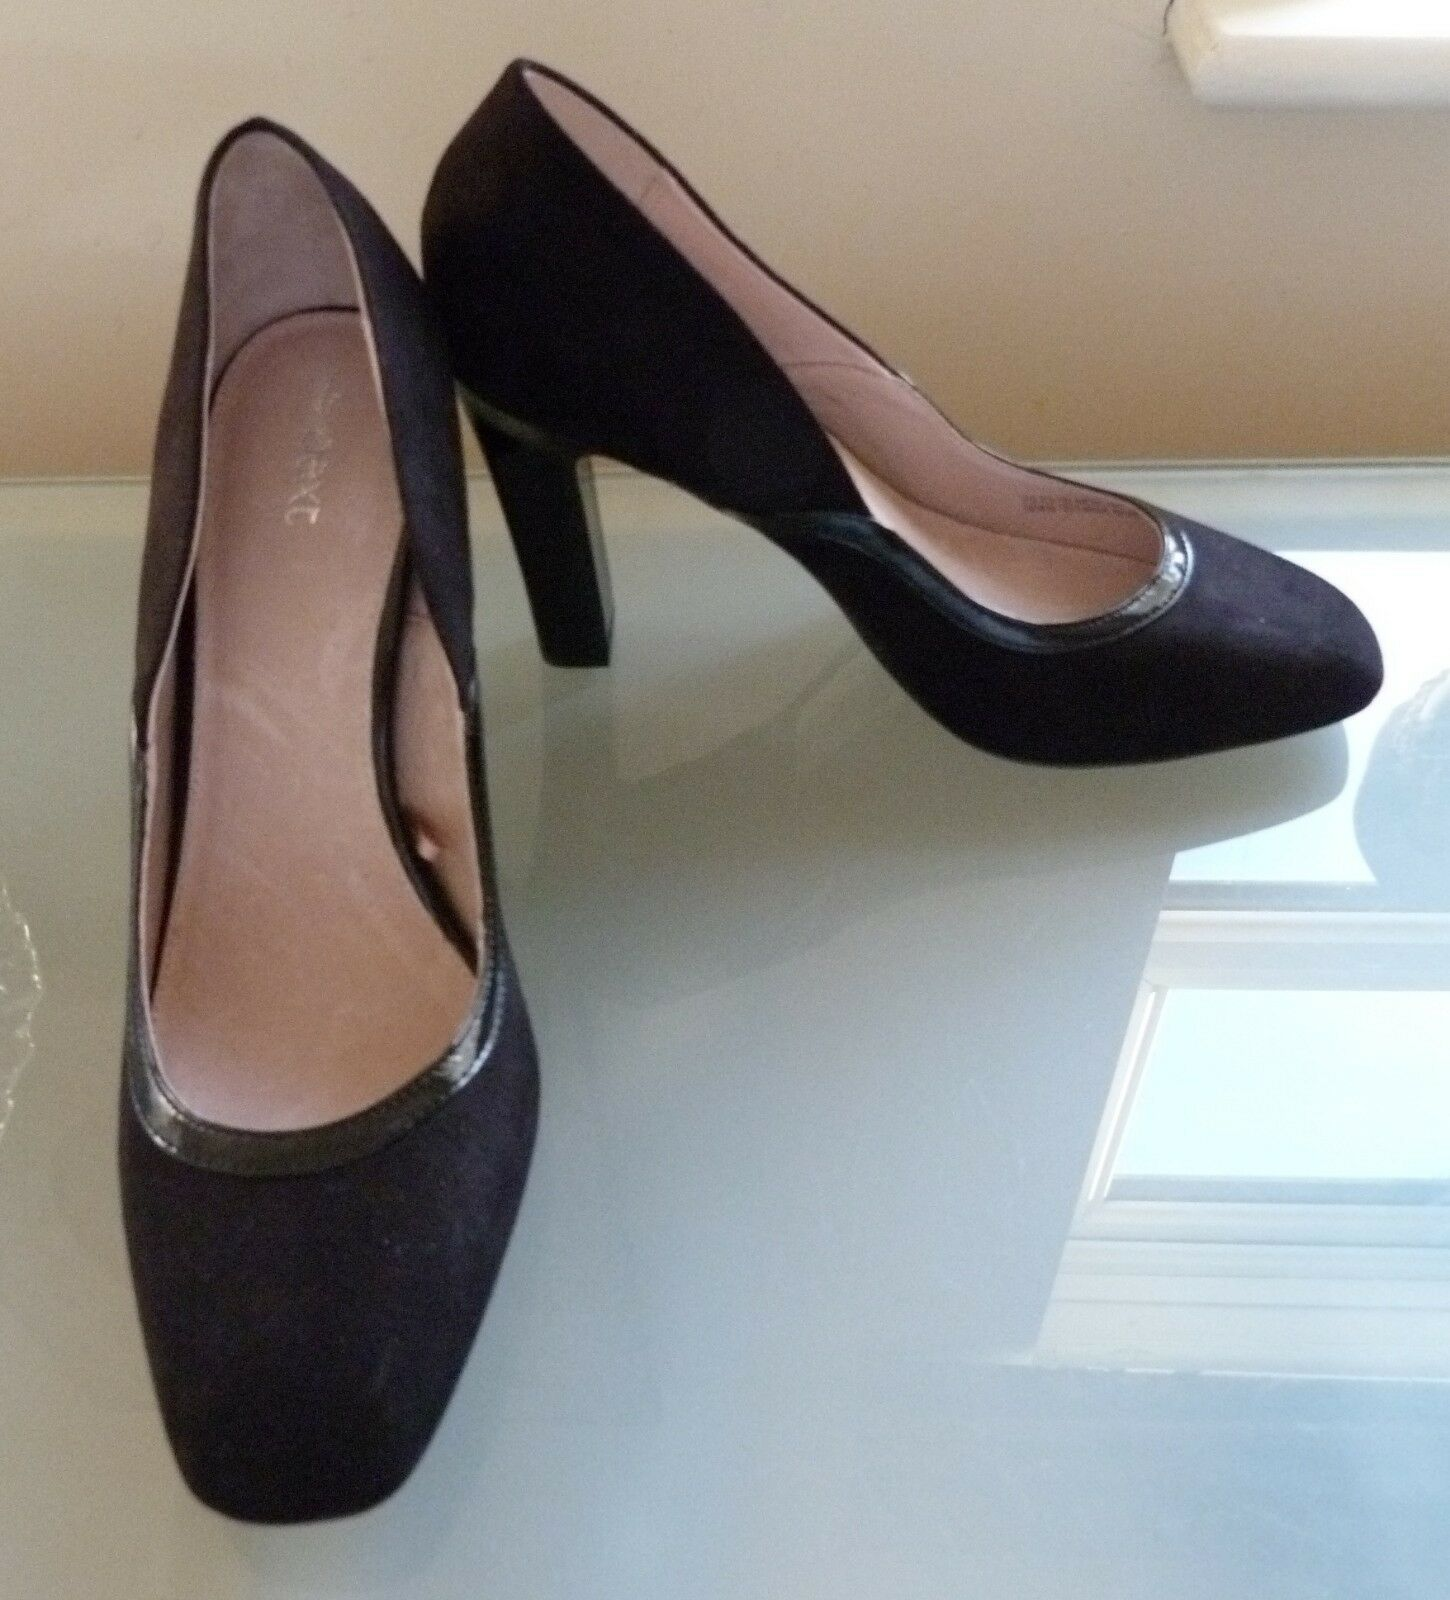 Next Ladies Shoes 7 41 Court Smart Work New BNWOT £28 Business Black Rounded Toe